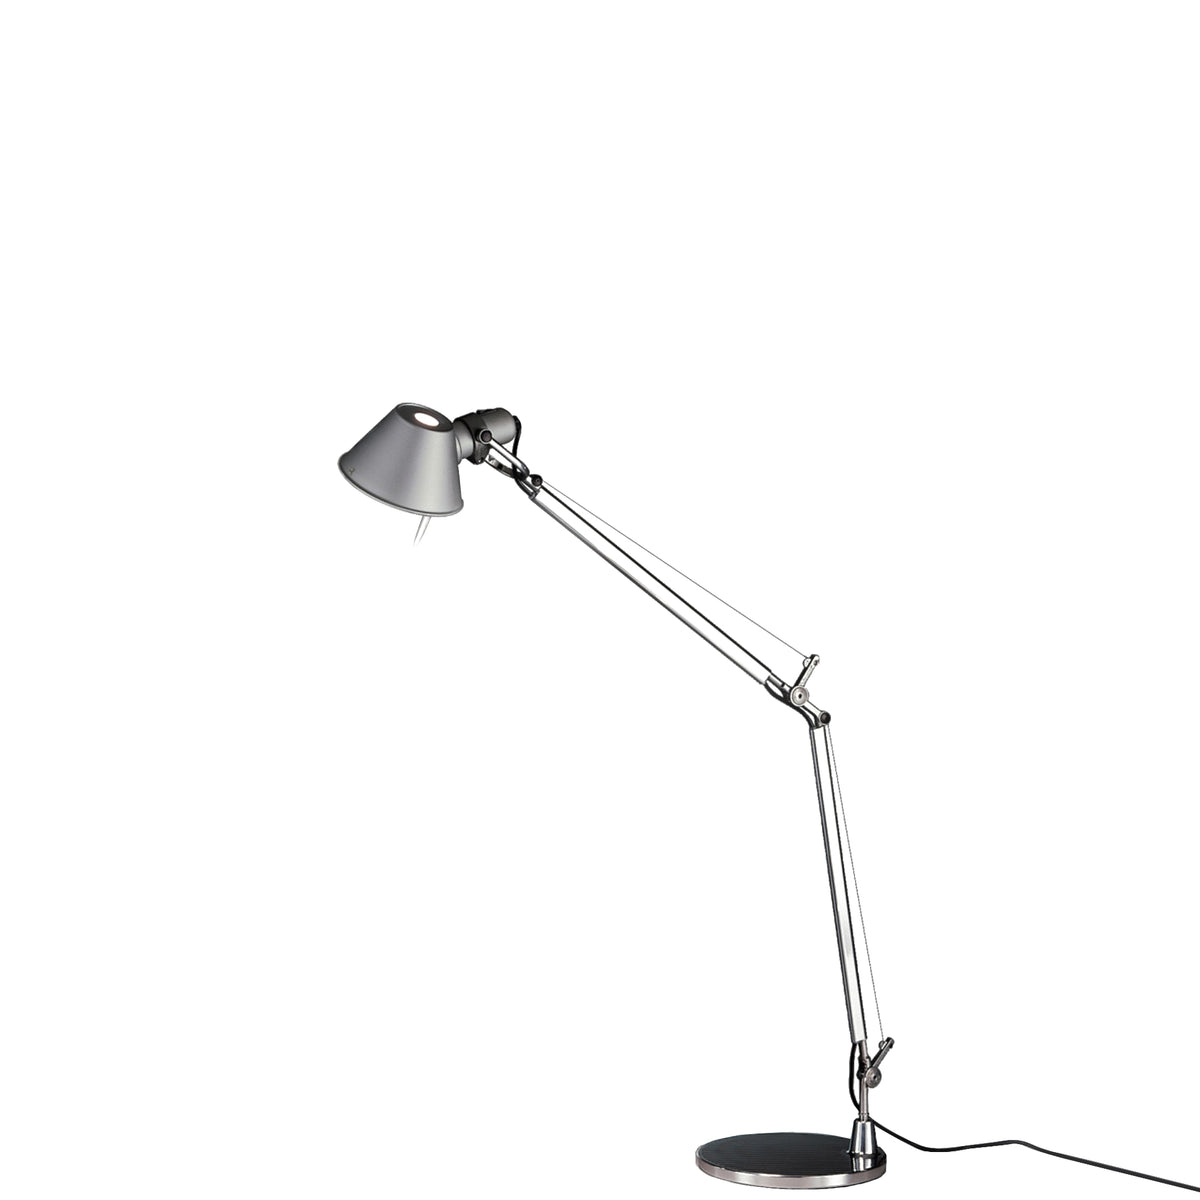 Artemide Aluminium Tolomeo Office Table Light with Presence Detector